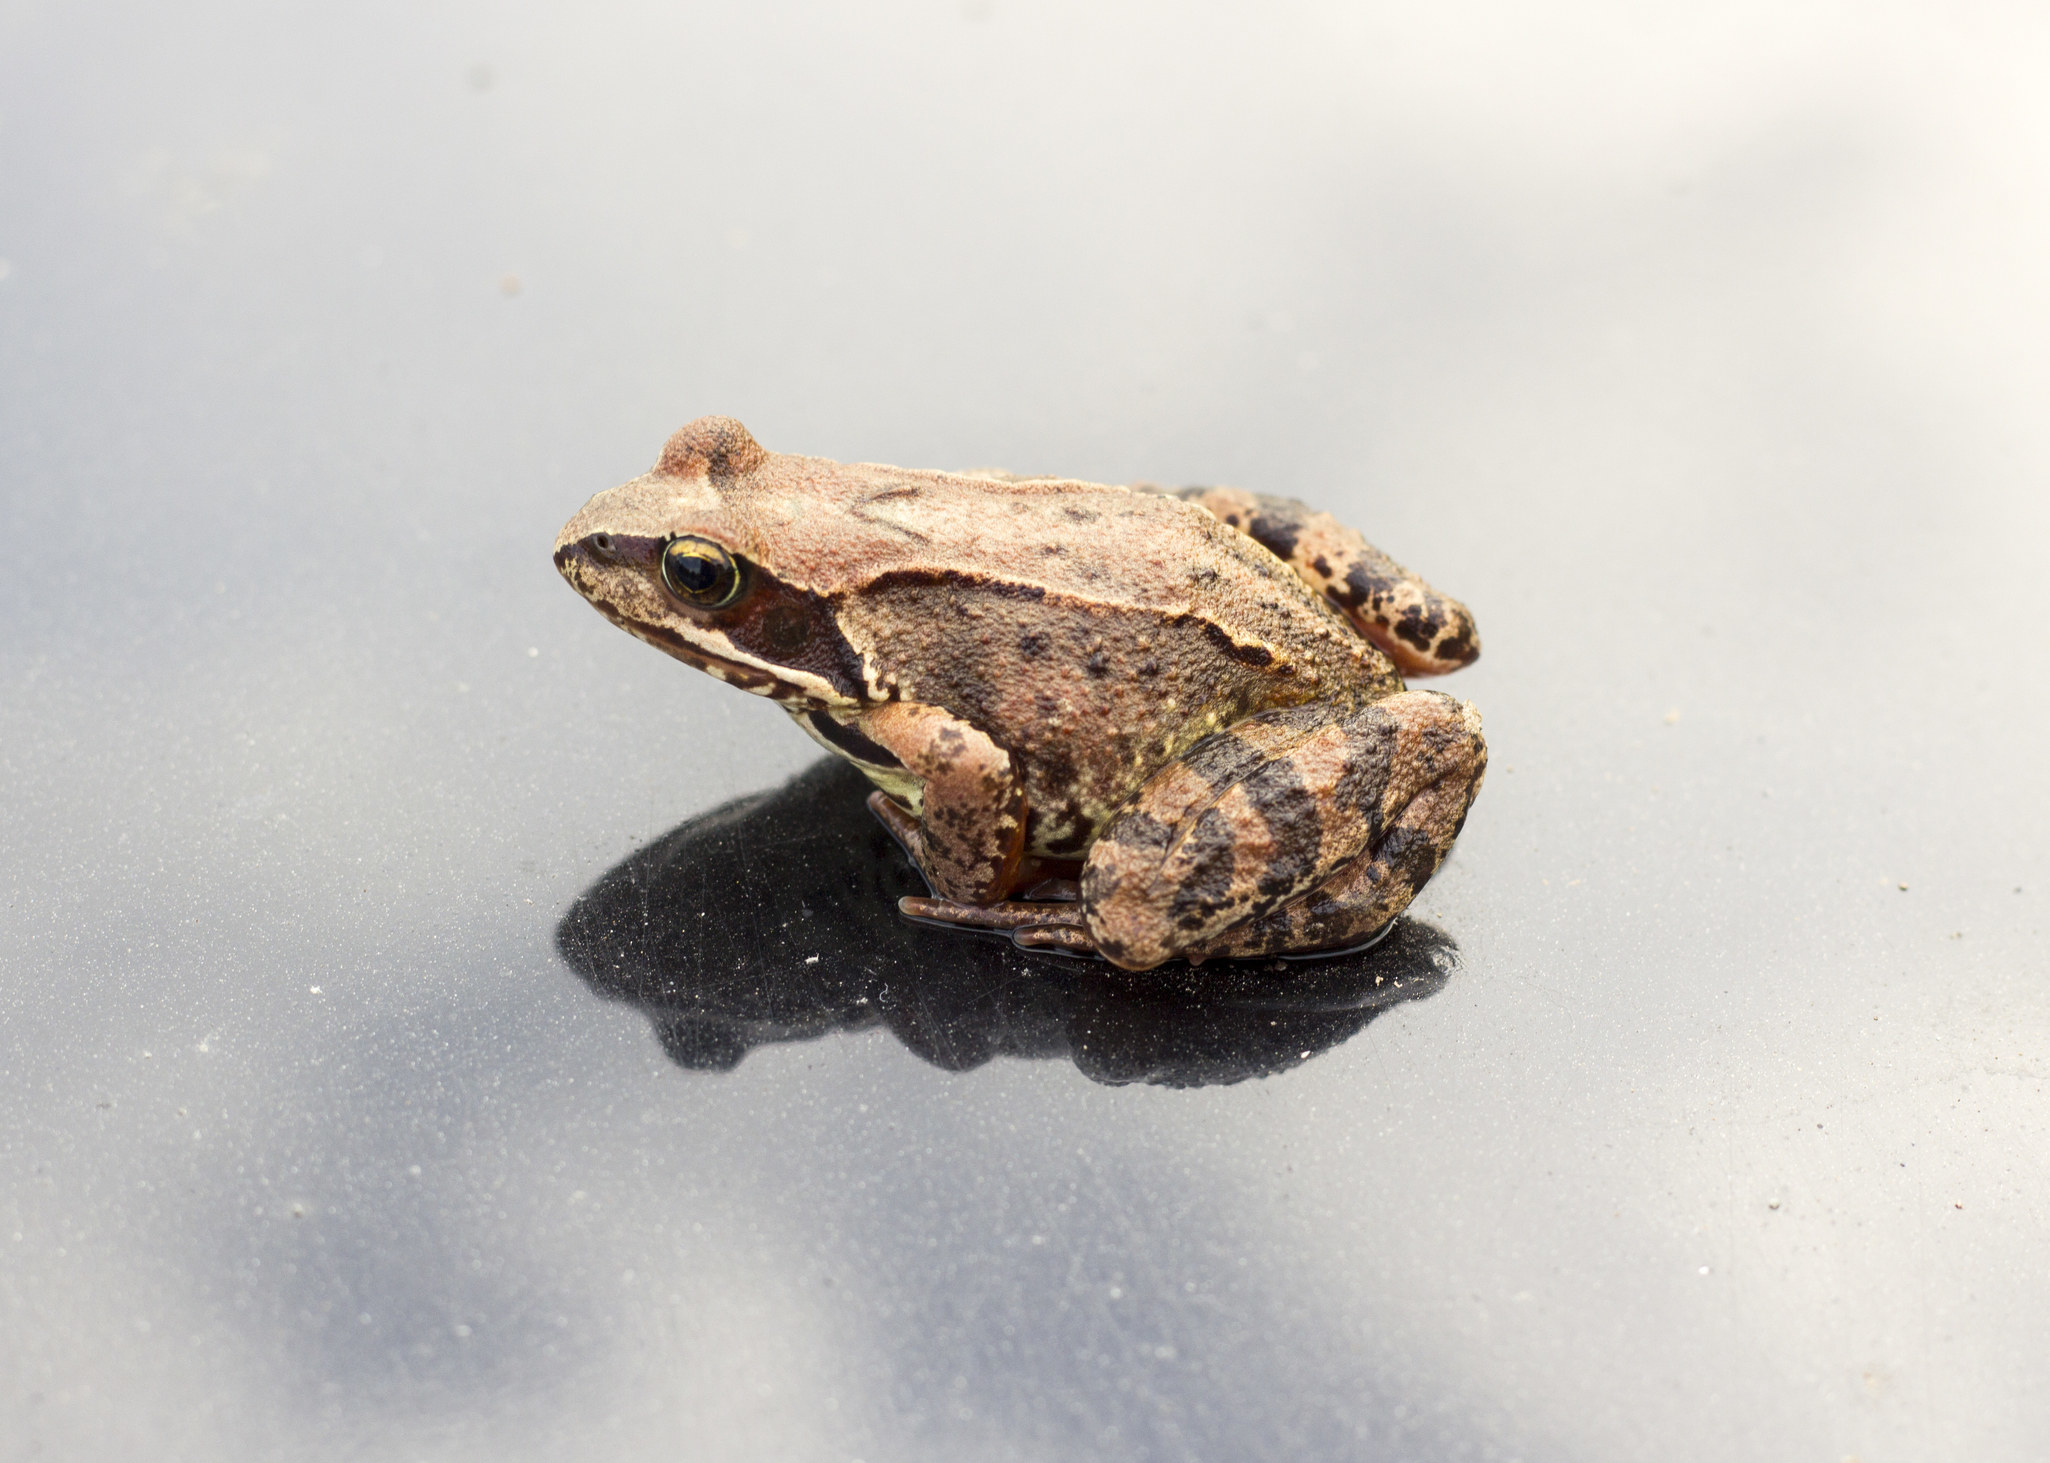 A Russian brown frog